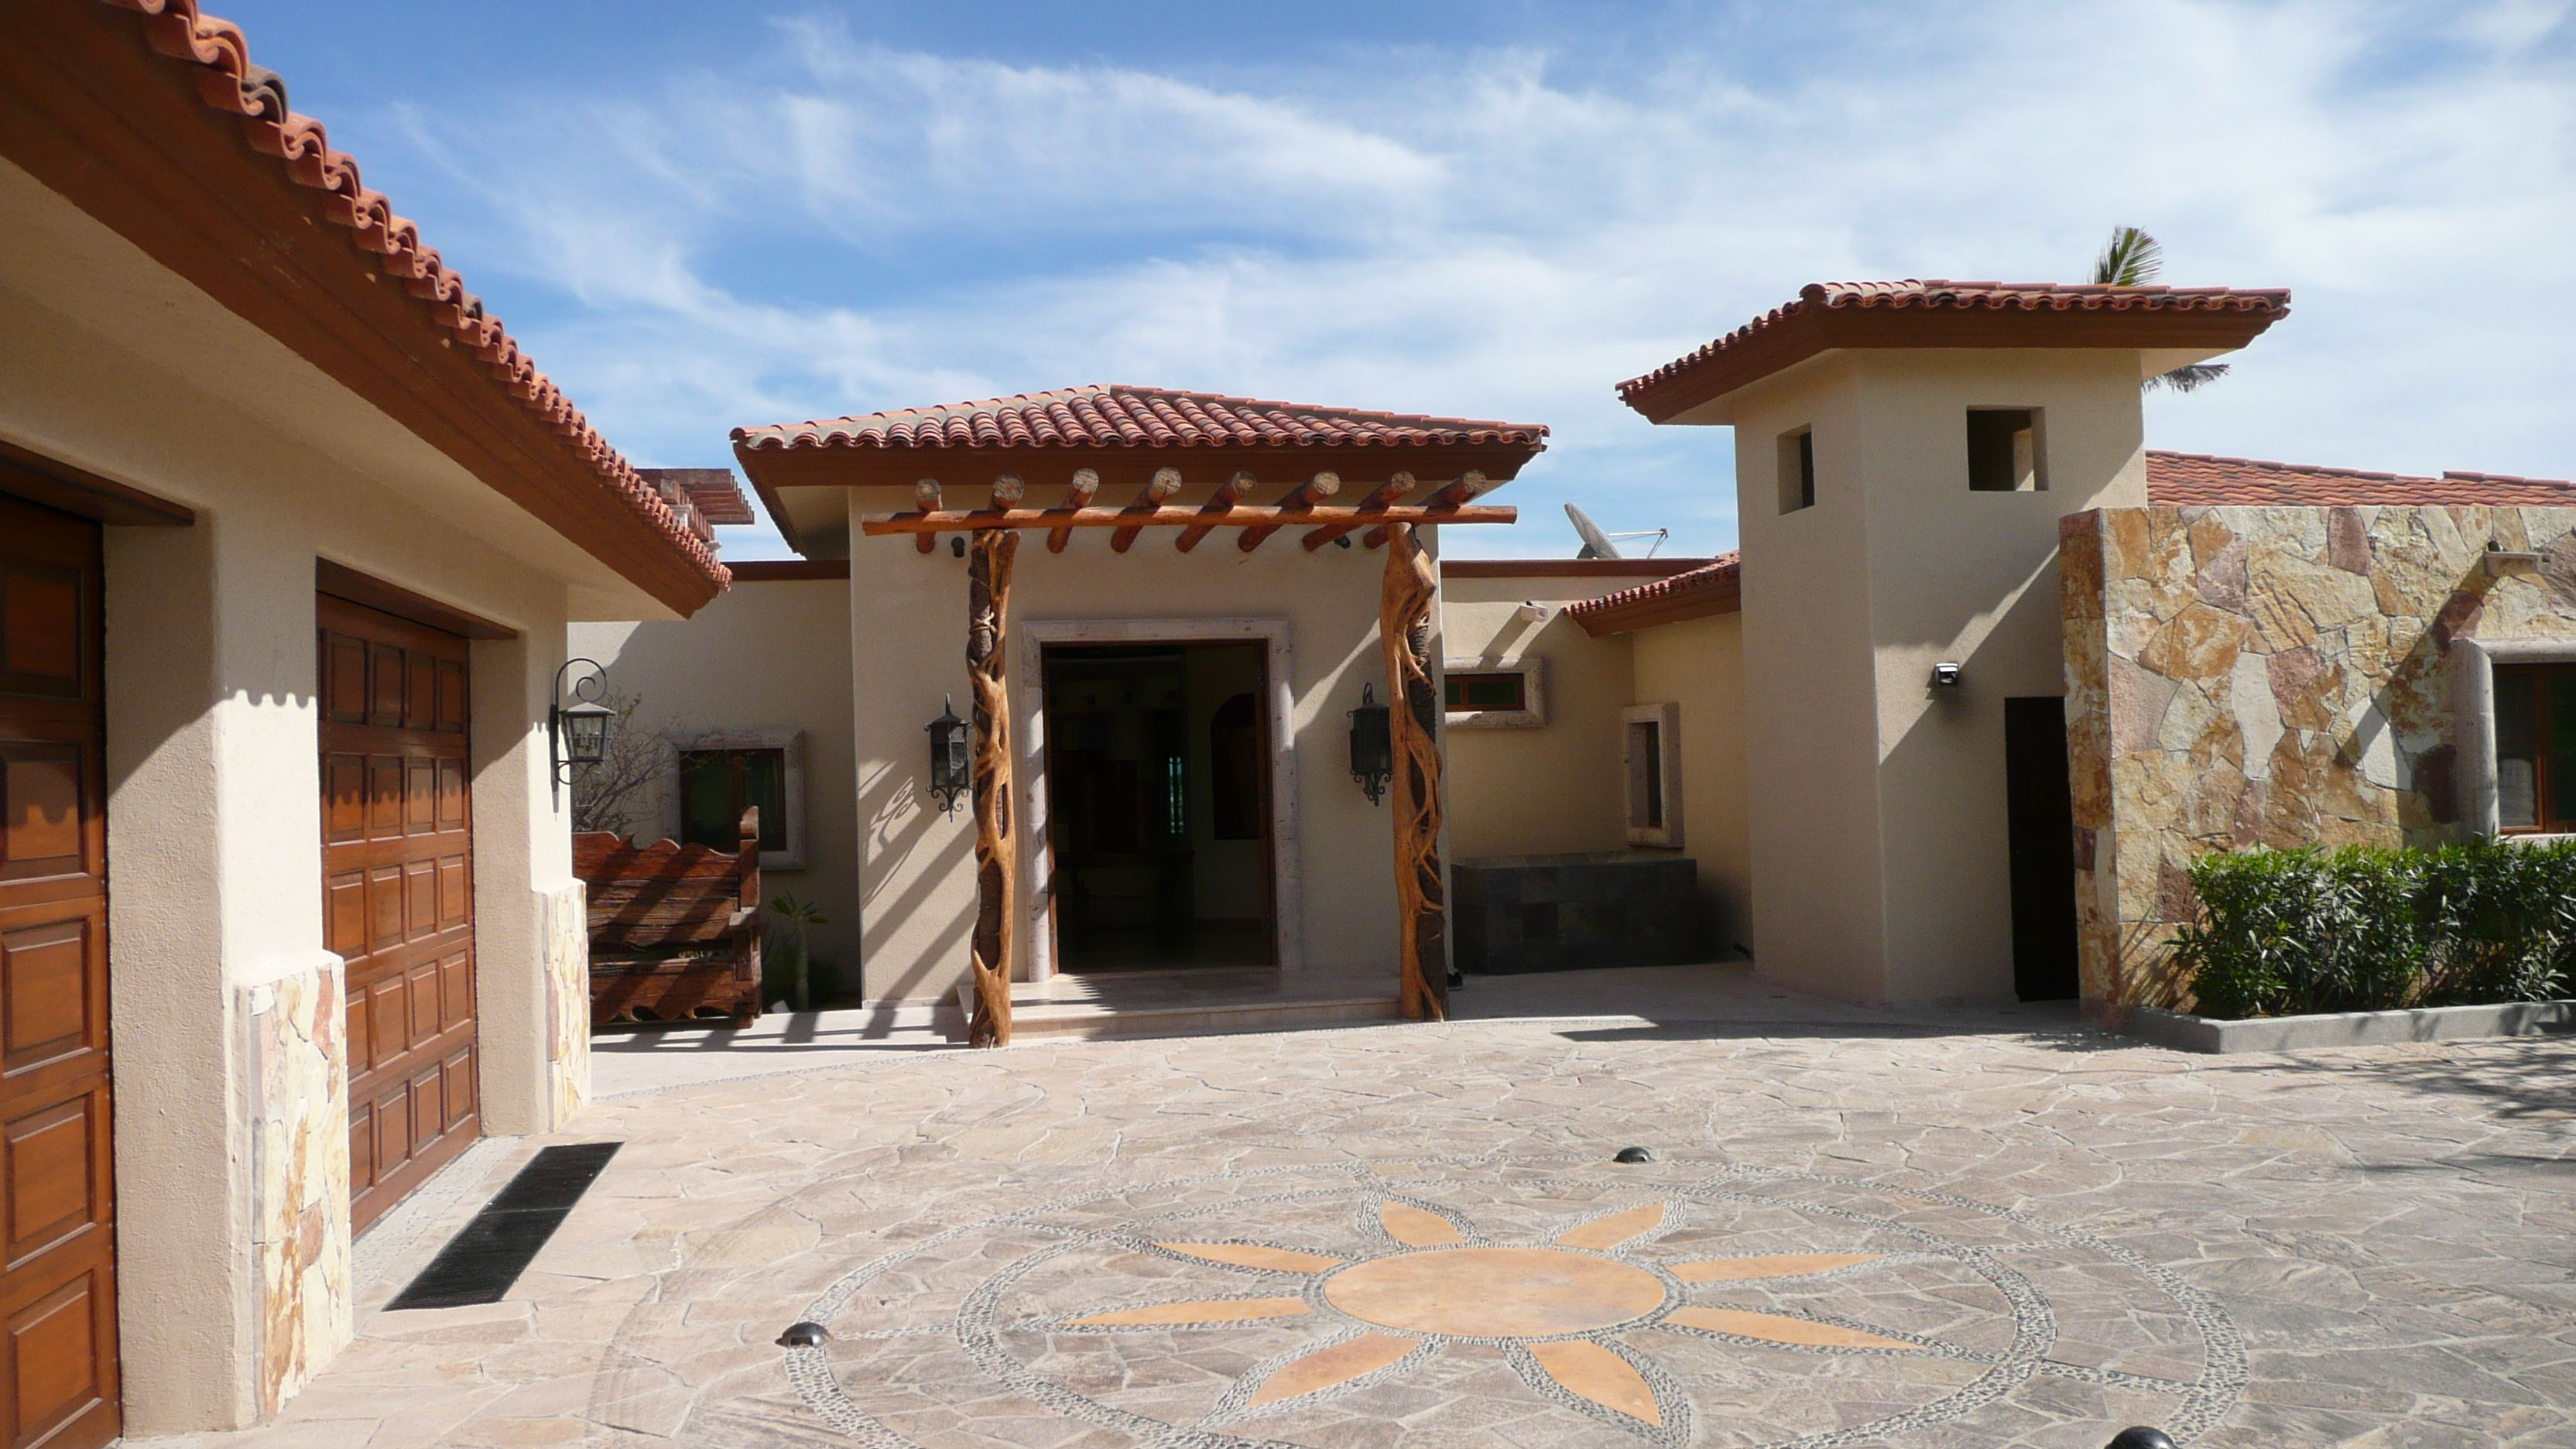 simple-design-delightful-spanish-and-mexican-architecture ...